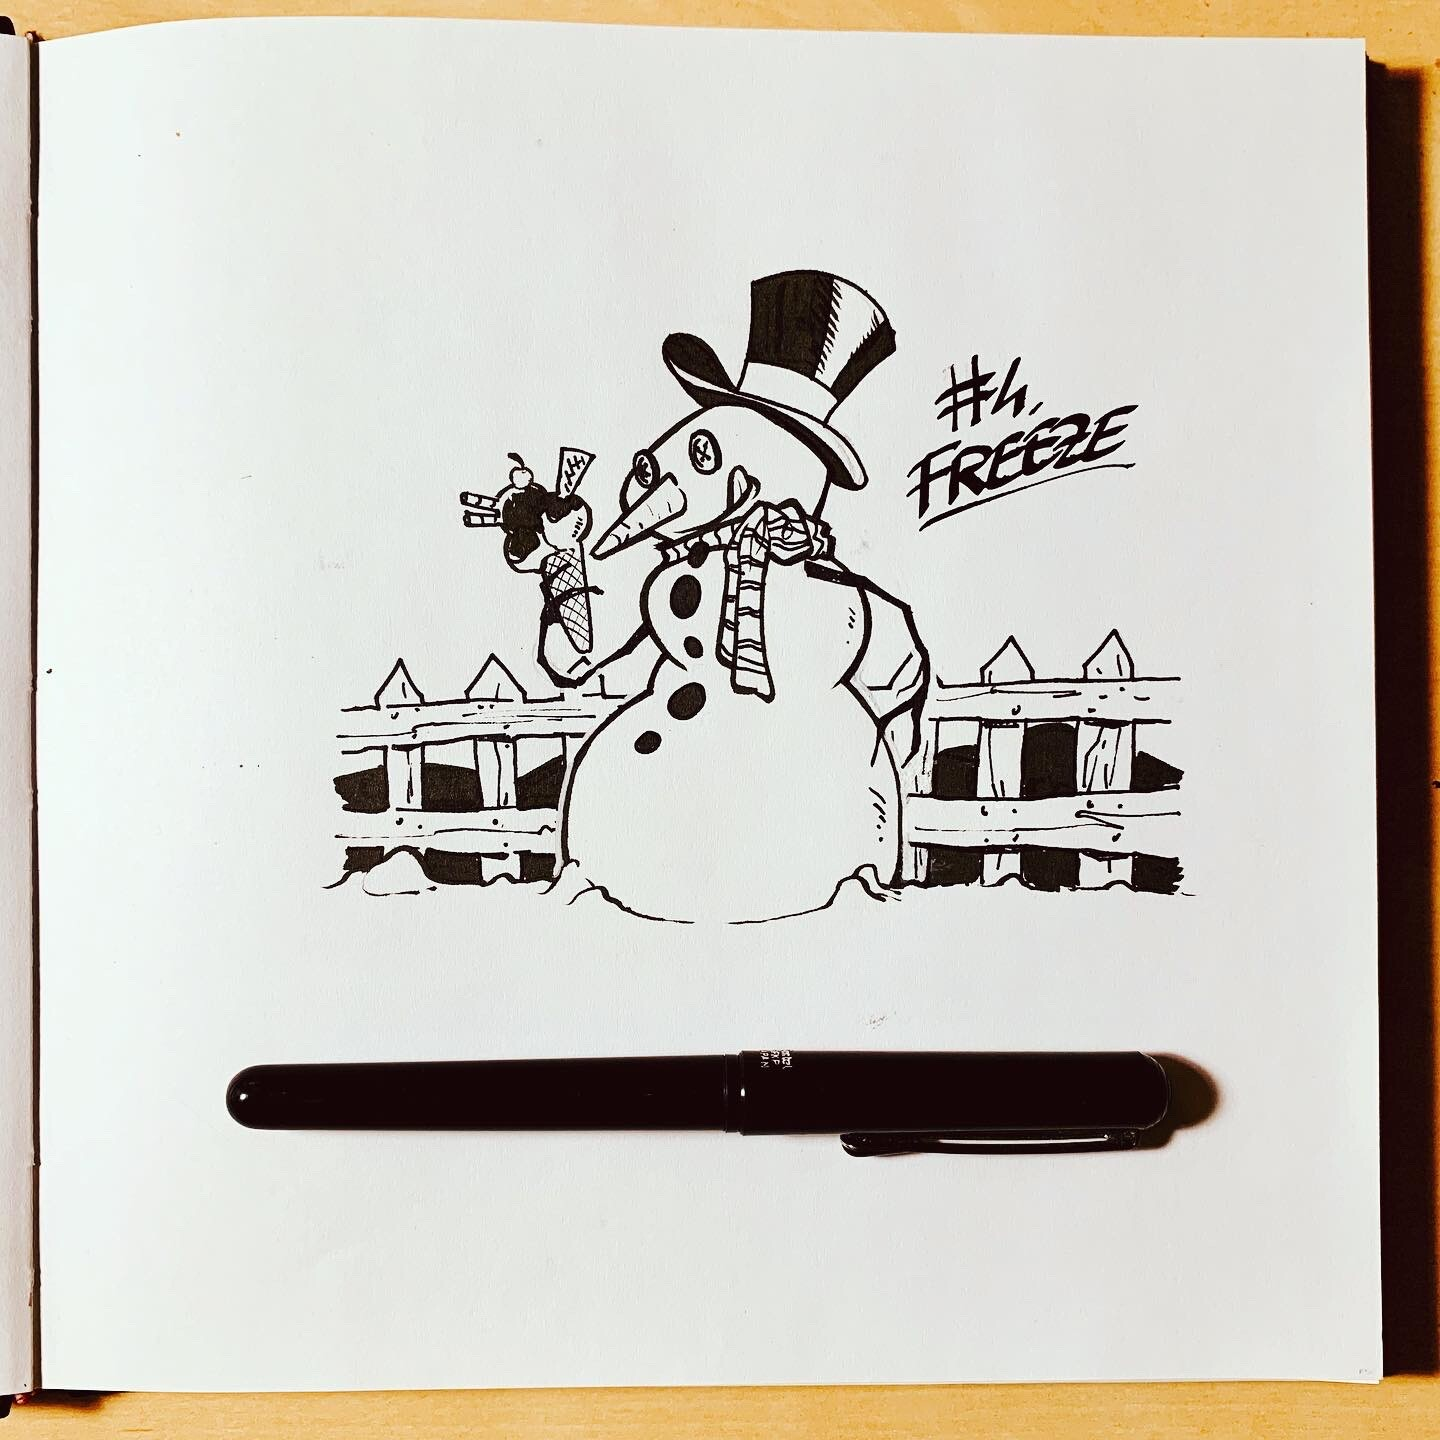 Inktober 2019: #4. Freeze